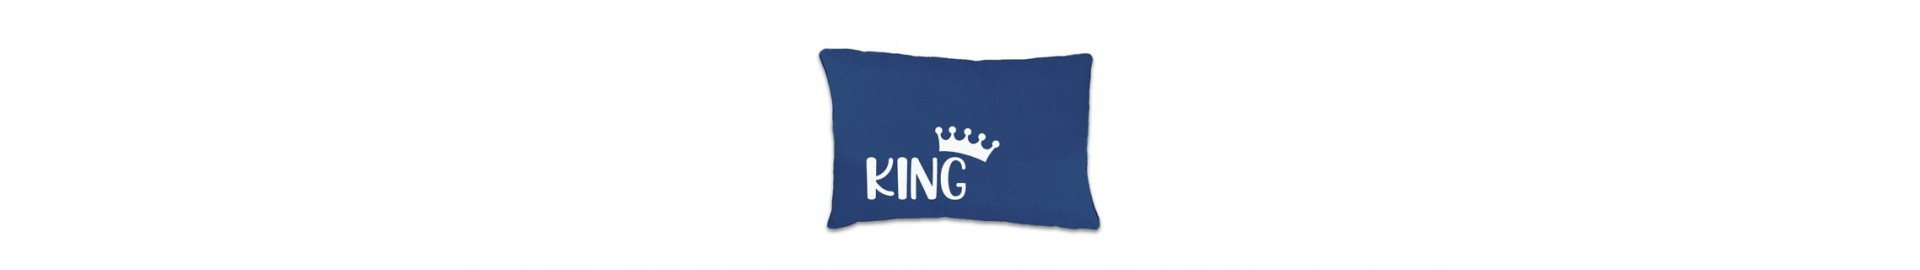 Personalized Dog Bed Pillows